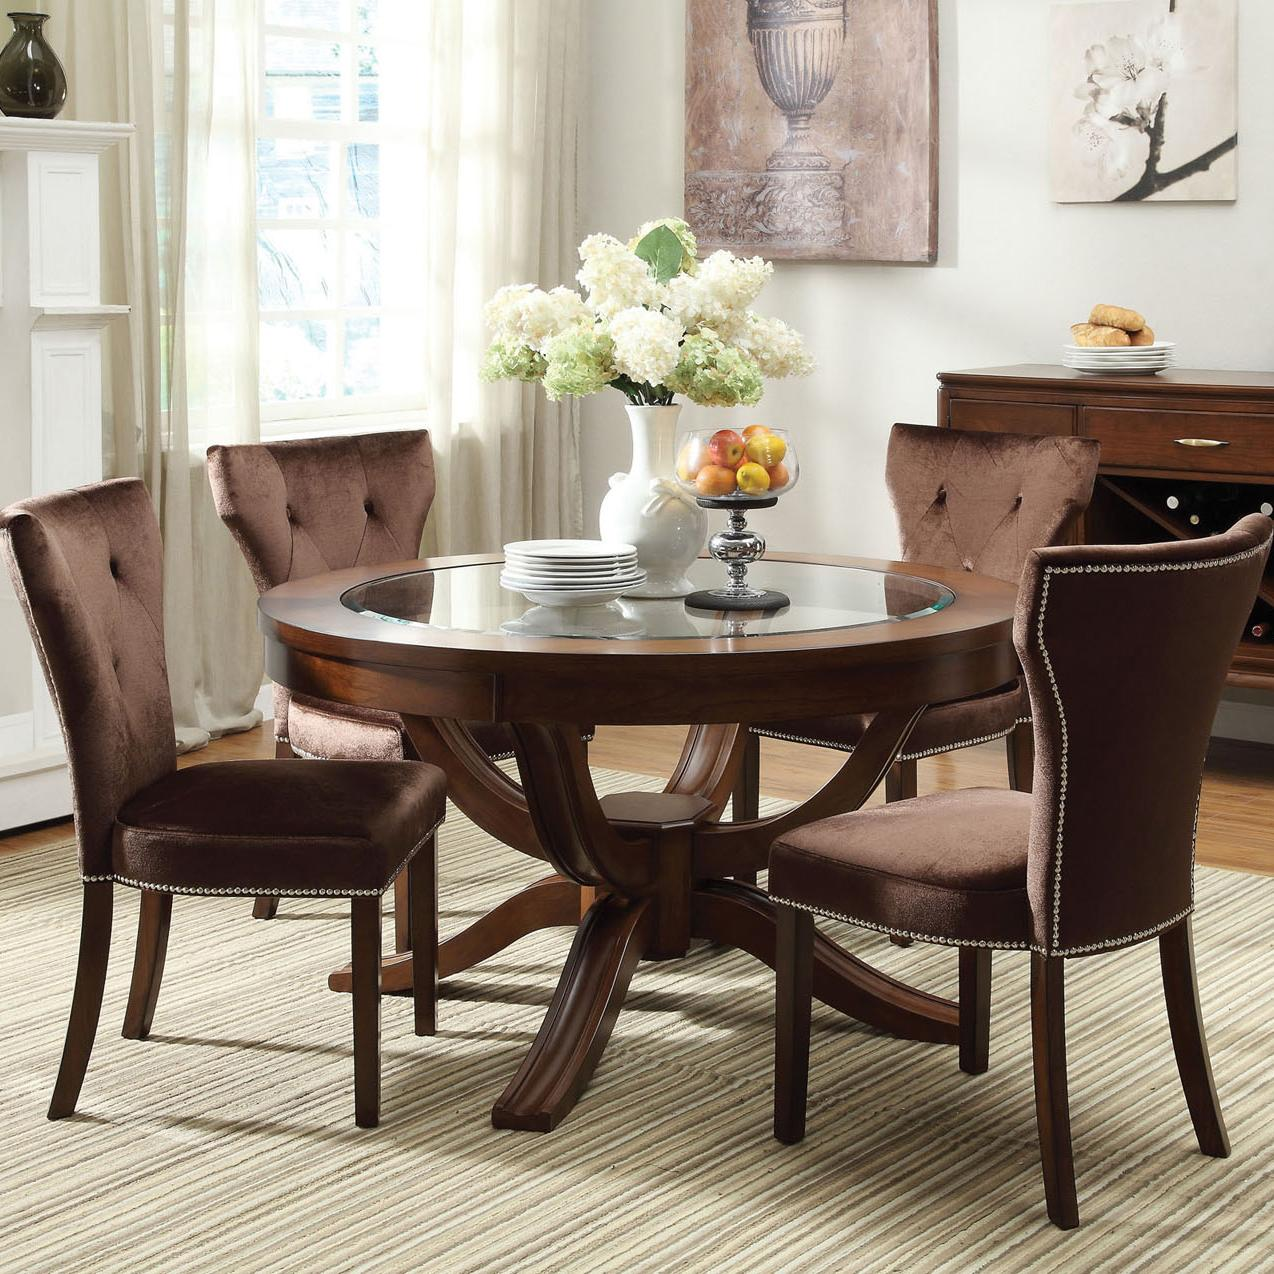 Acme Furniture Kingston 5-Piece Dining Table and Chair Set - Item Number: 60022+60024